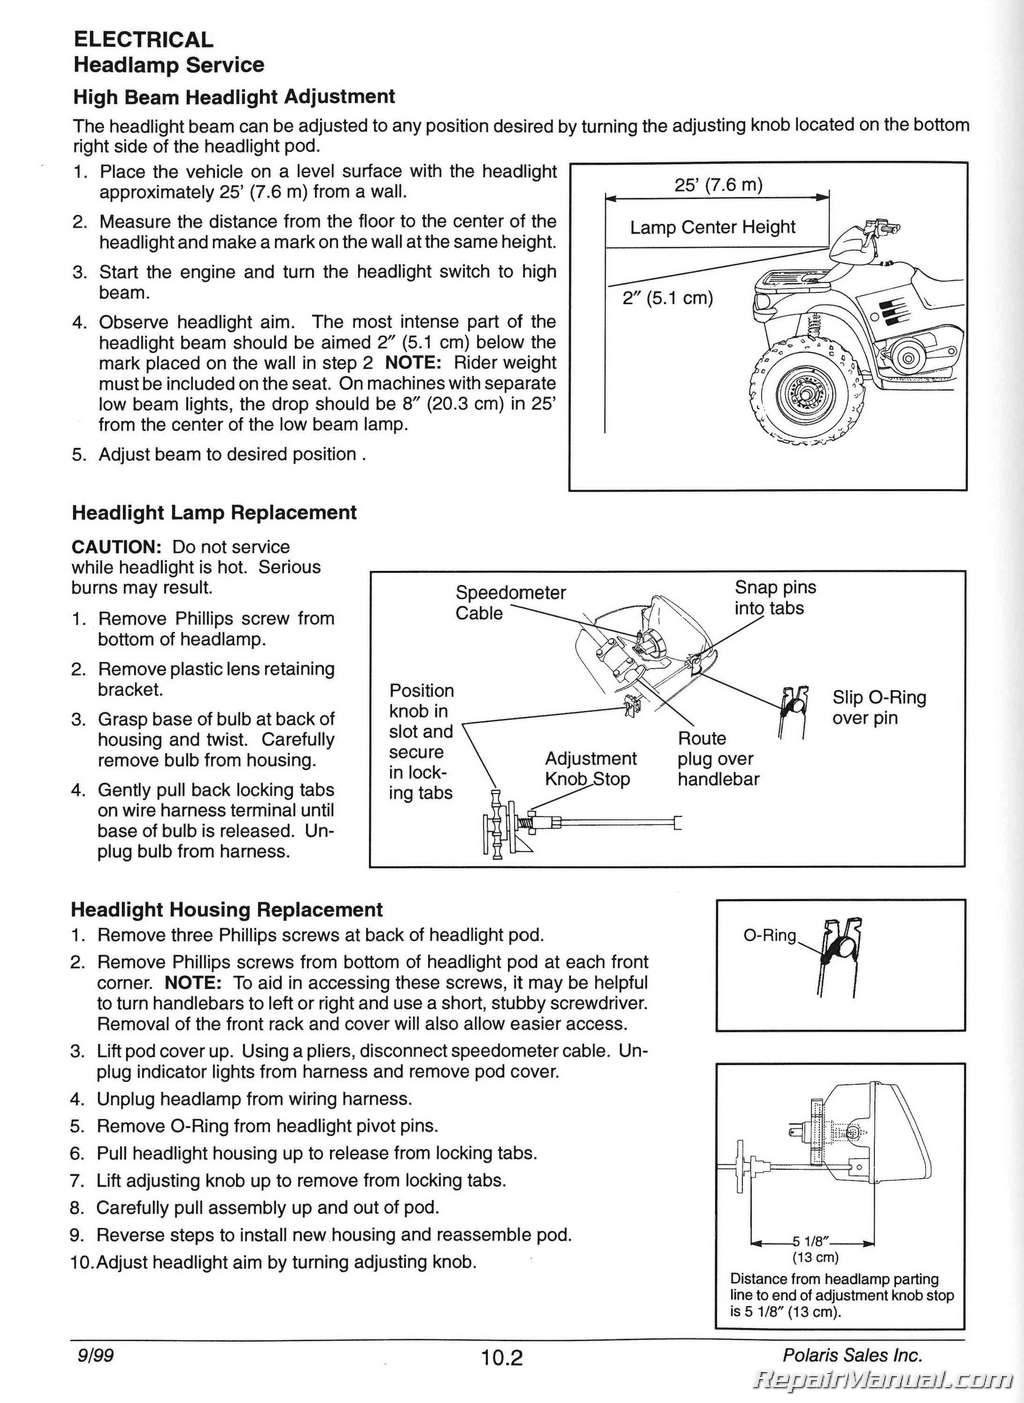 99 Polaris Ranger Wiring Diagram Library Honda 500 4 1996 2000 Sportsman 335 Atv Service Manual Rh Repairmanual Com Ignition